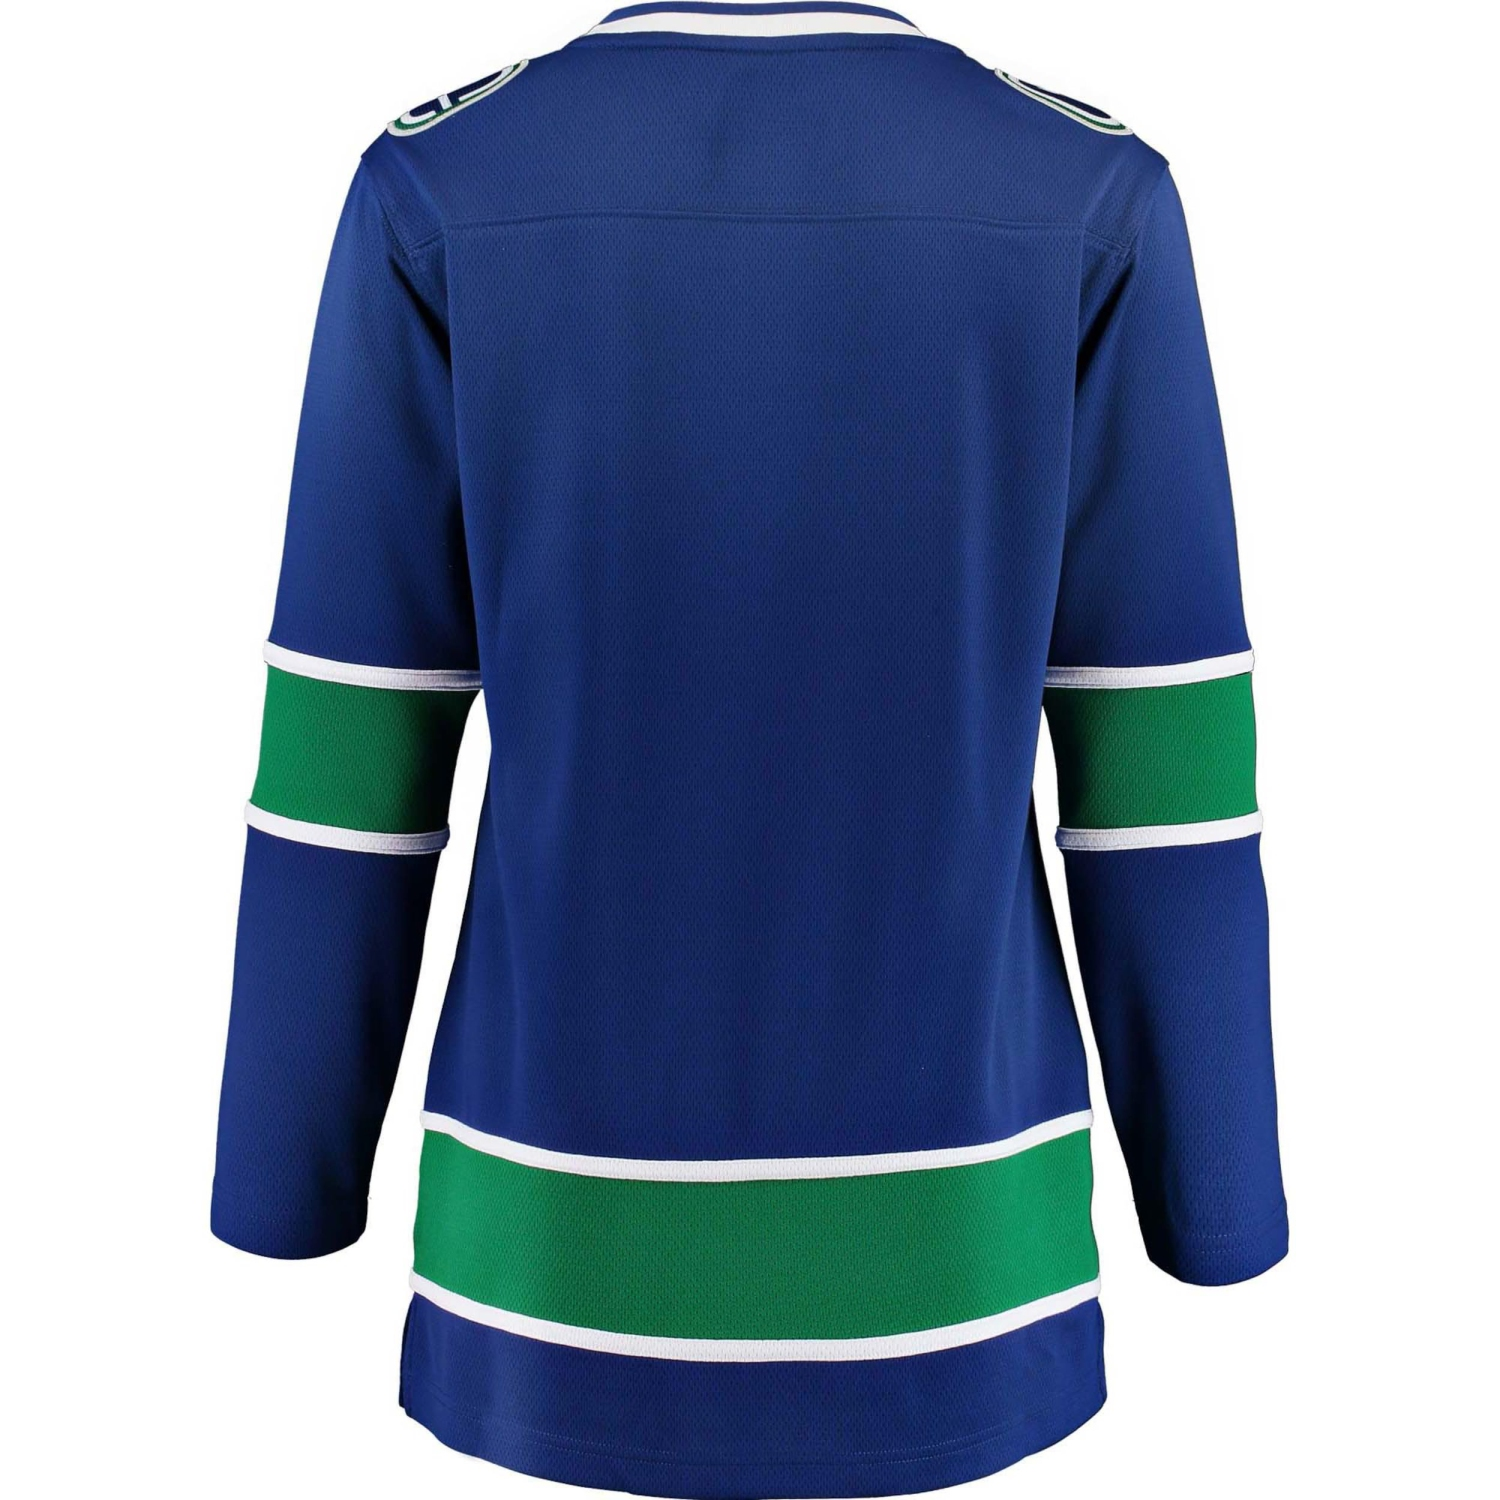 50ba17d56 Women s Vancouver Canucks NHL Fanatics Breakaway Home Jersey - Medium -  Online Only